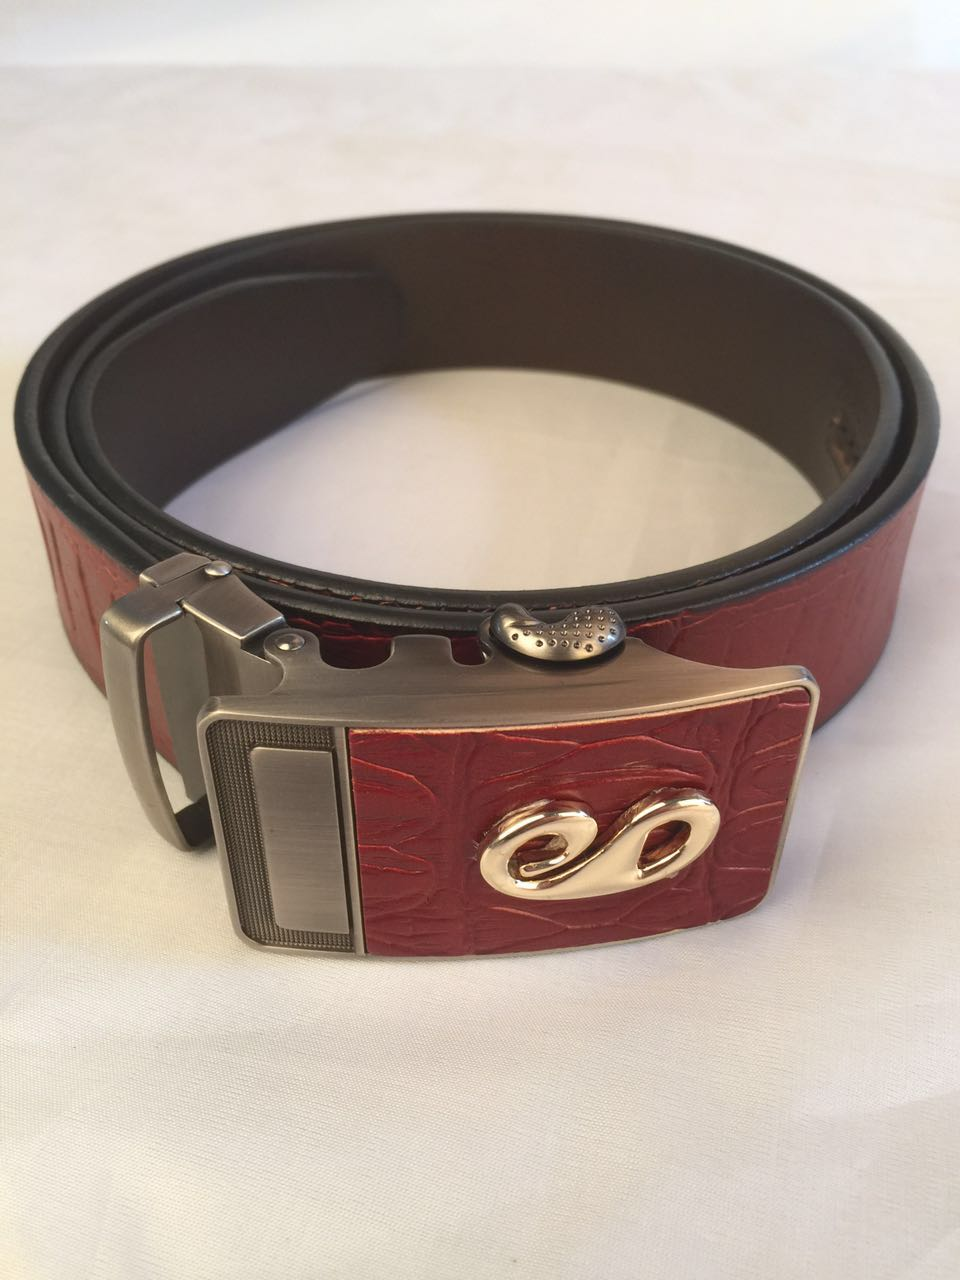 2017New fashion cowhide durable girdle man recreational comfortable soft retro copper buckle belt thickened solid colors belt